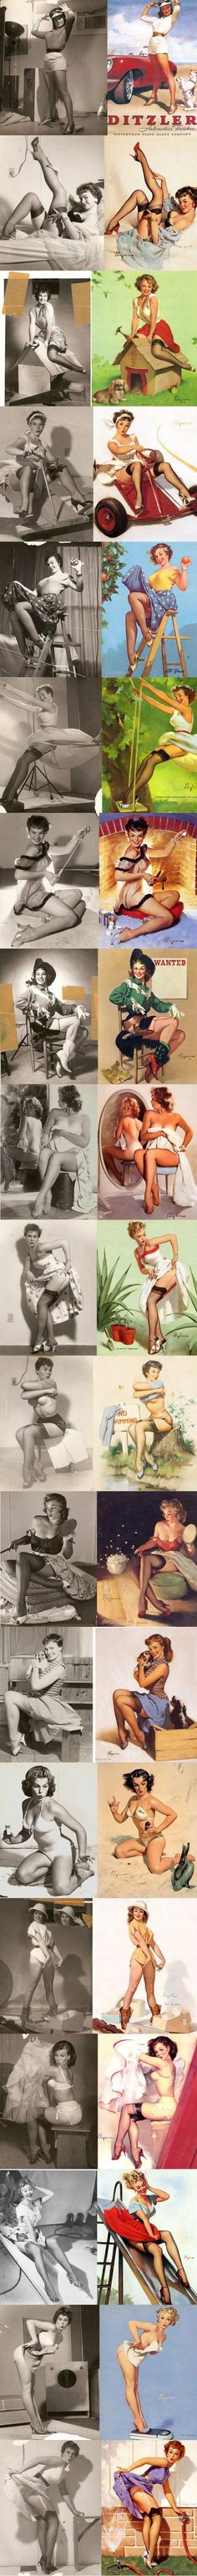 Pin-Up art and their models